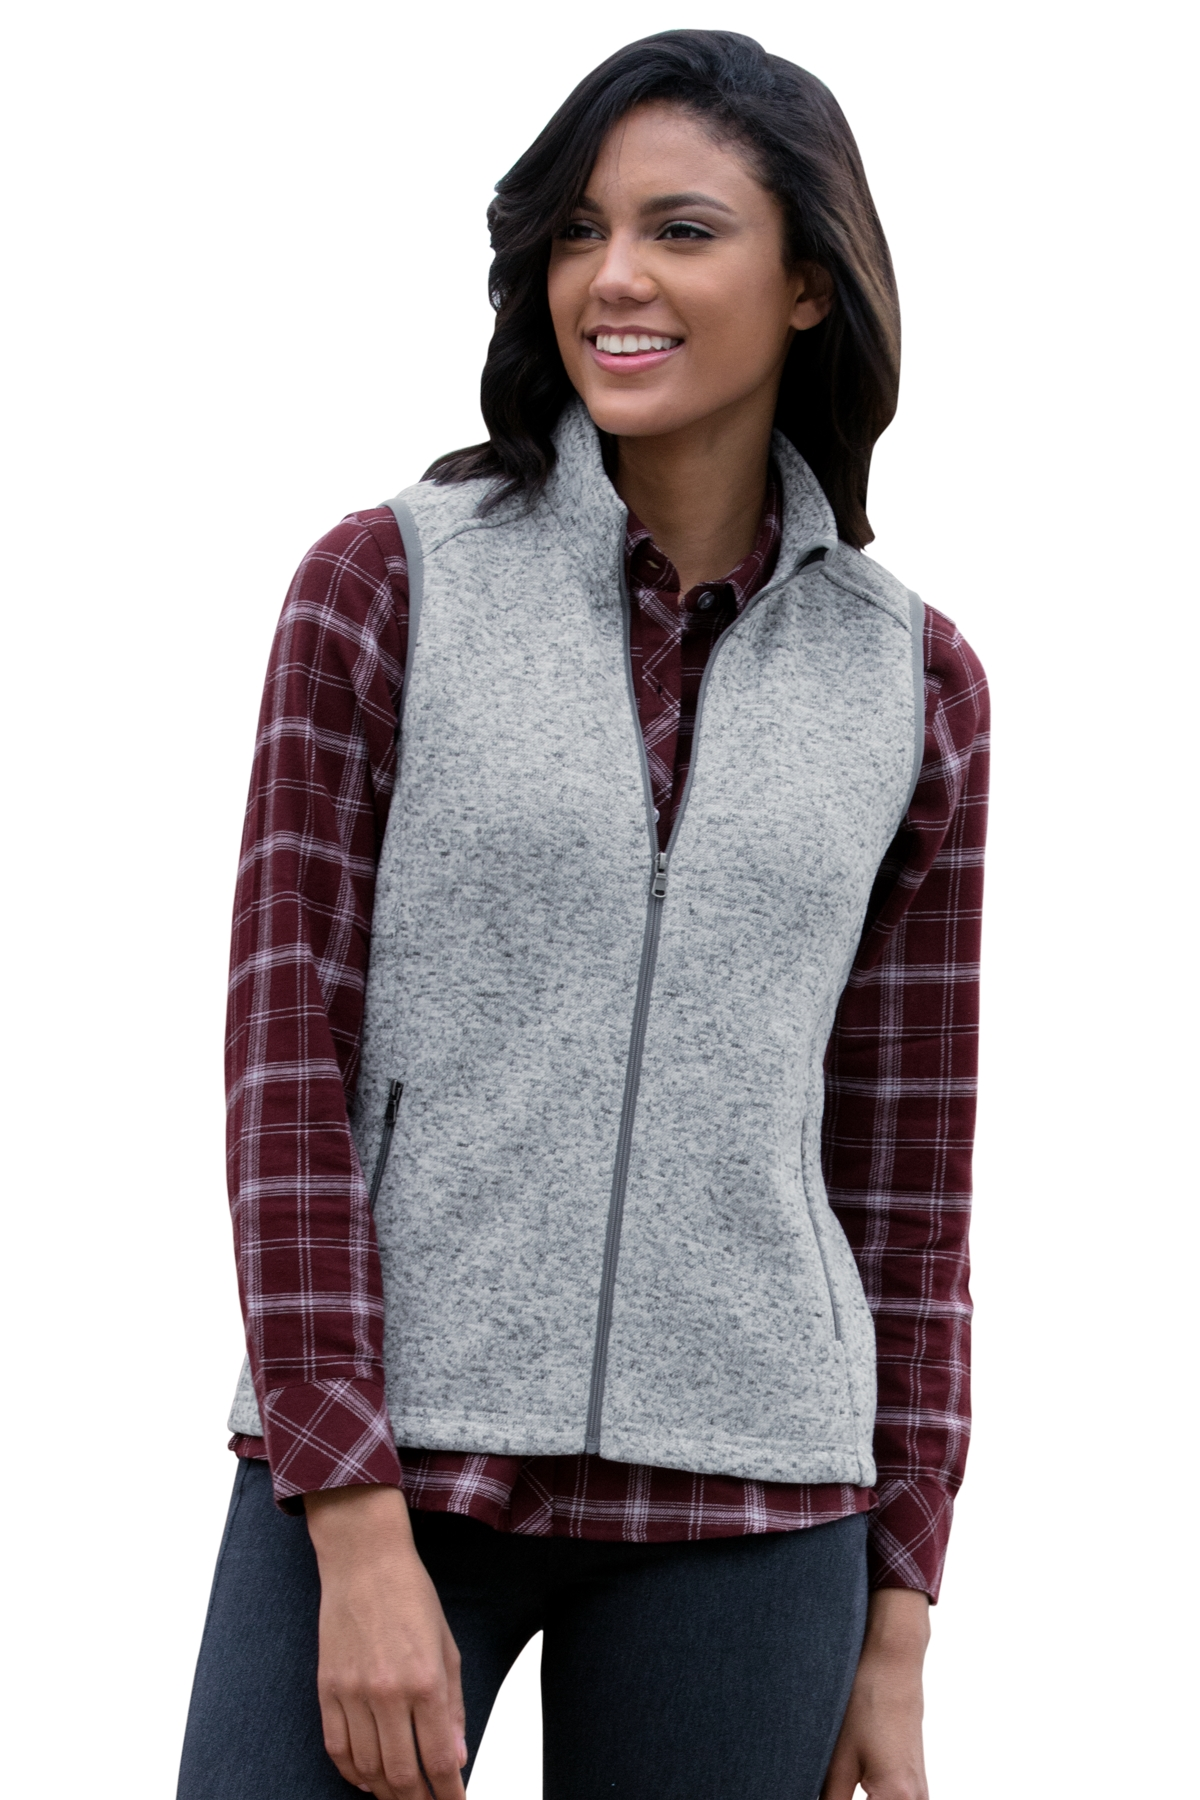 Vantage 3308 - Women's Summit Sweater-Fleece Vest